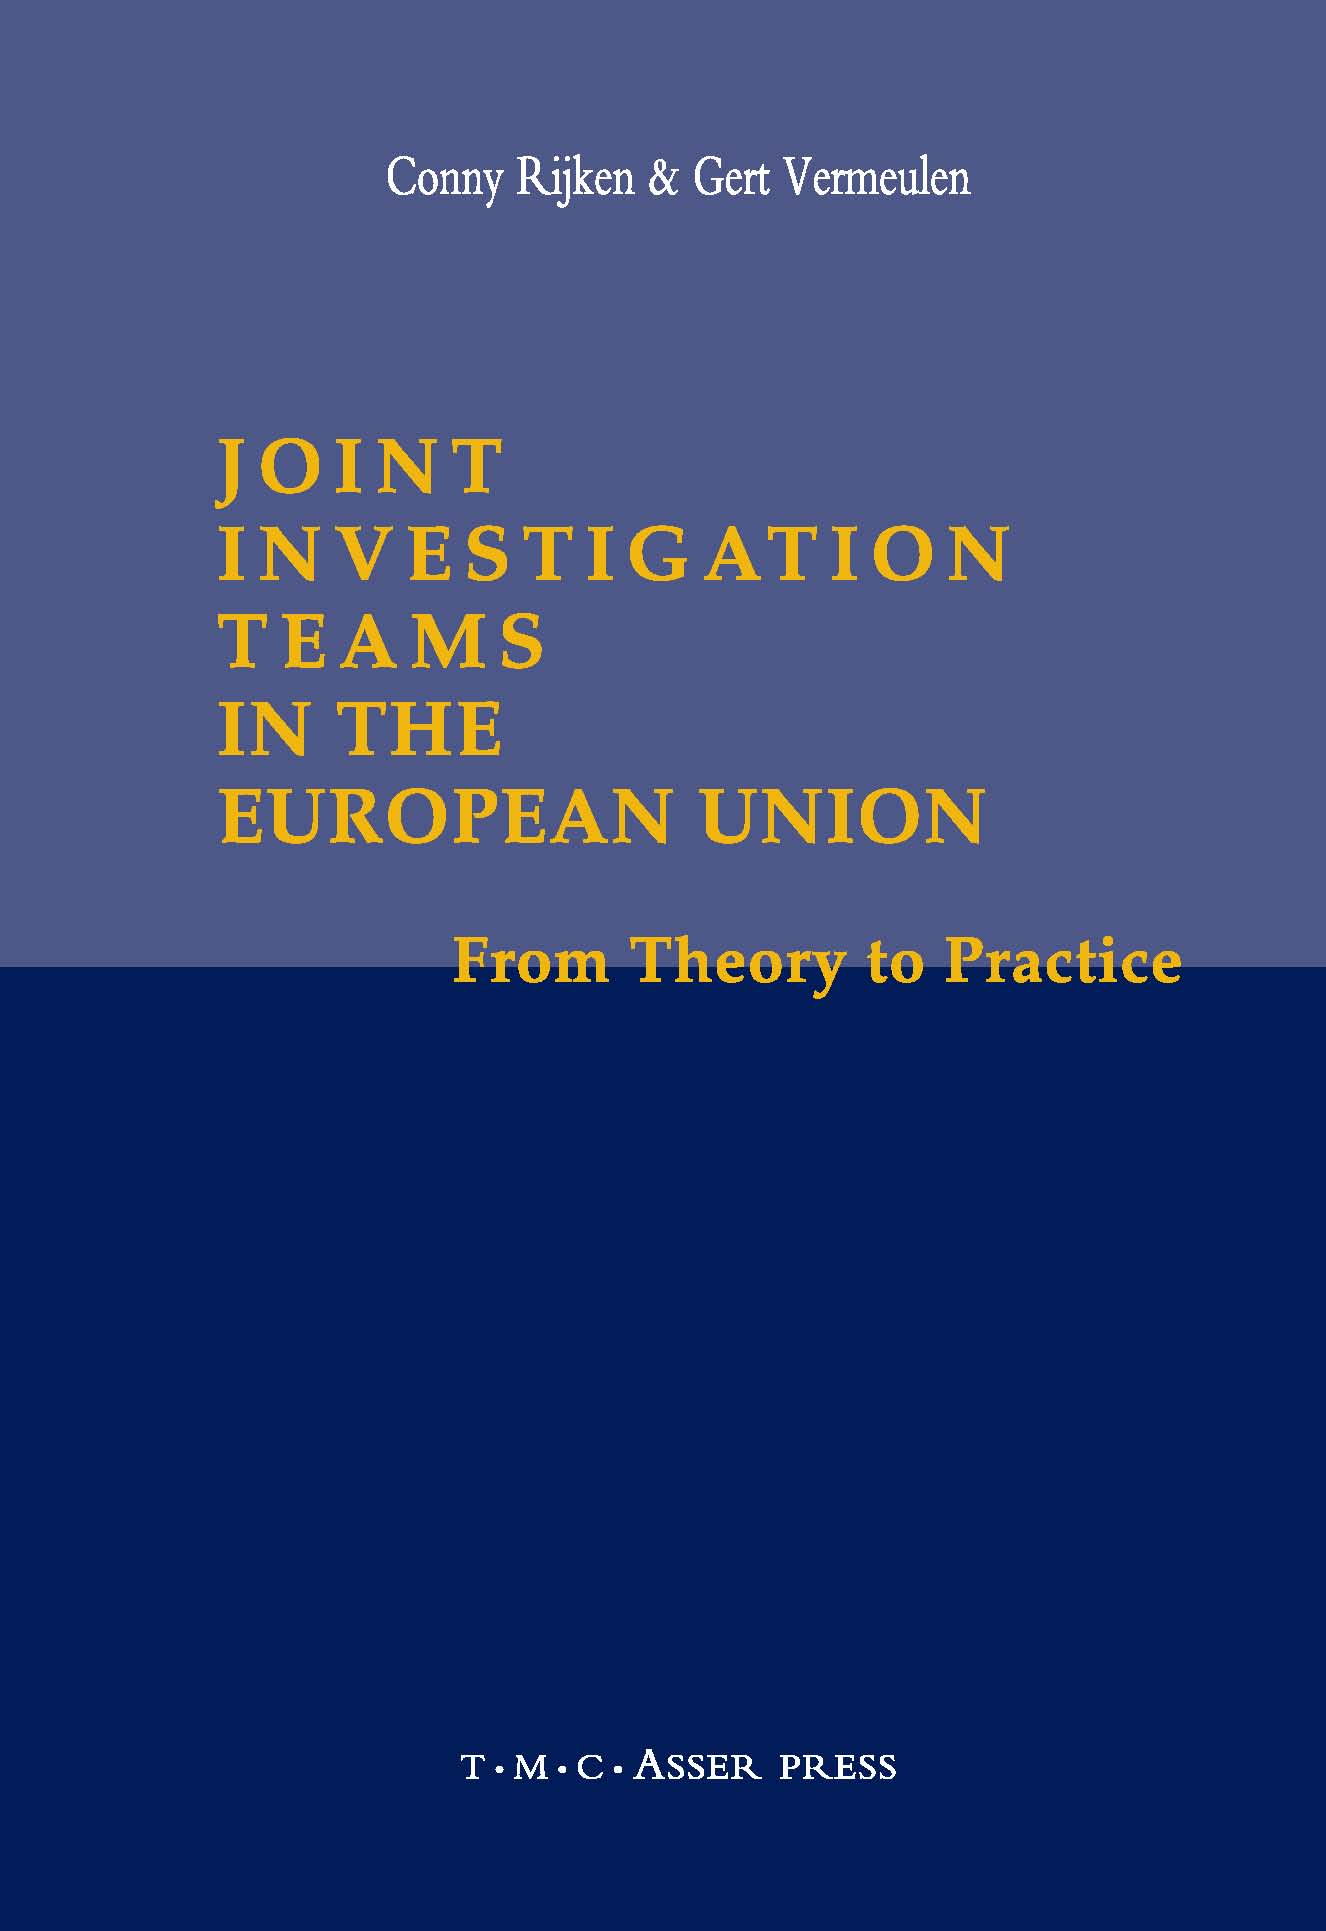 Joint Investigation Teams in the European Union - From Theory to Practice